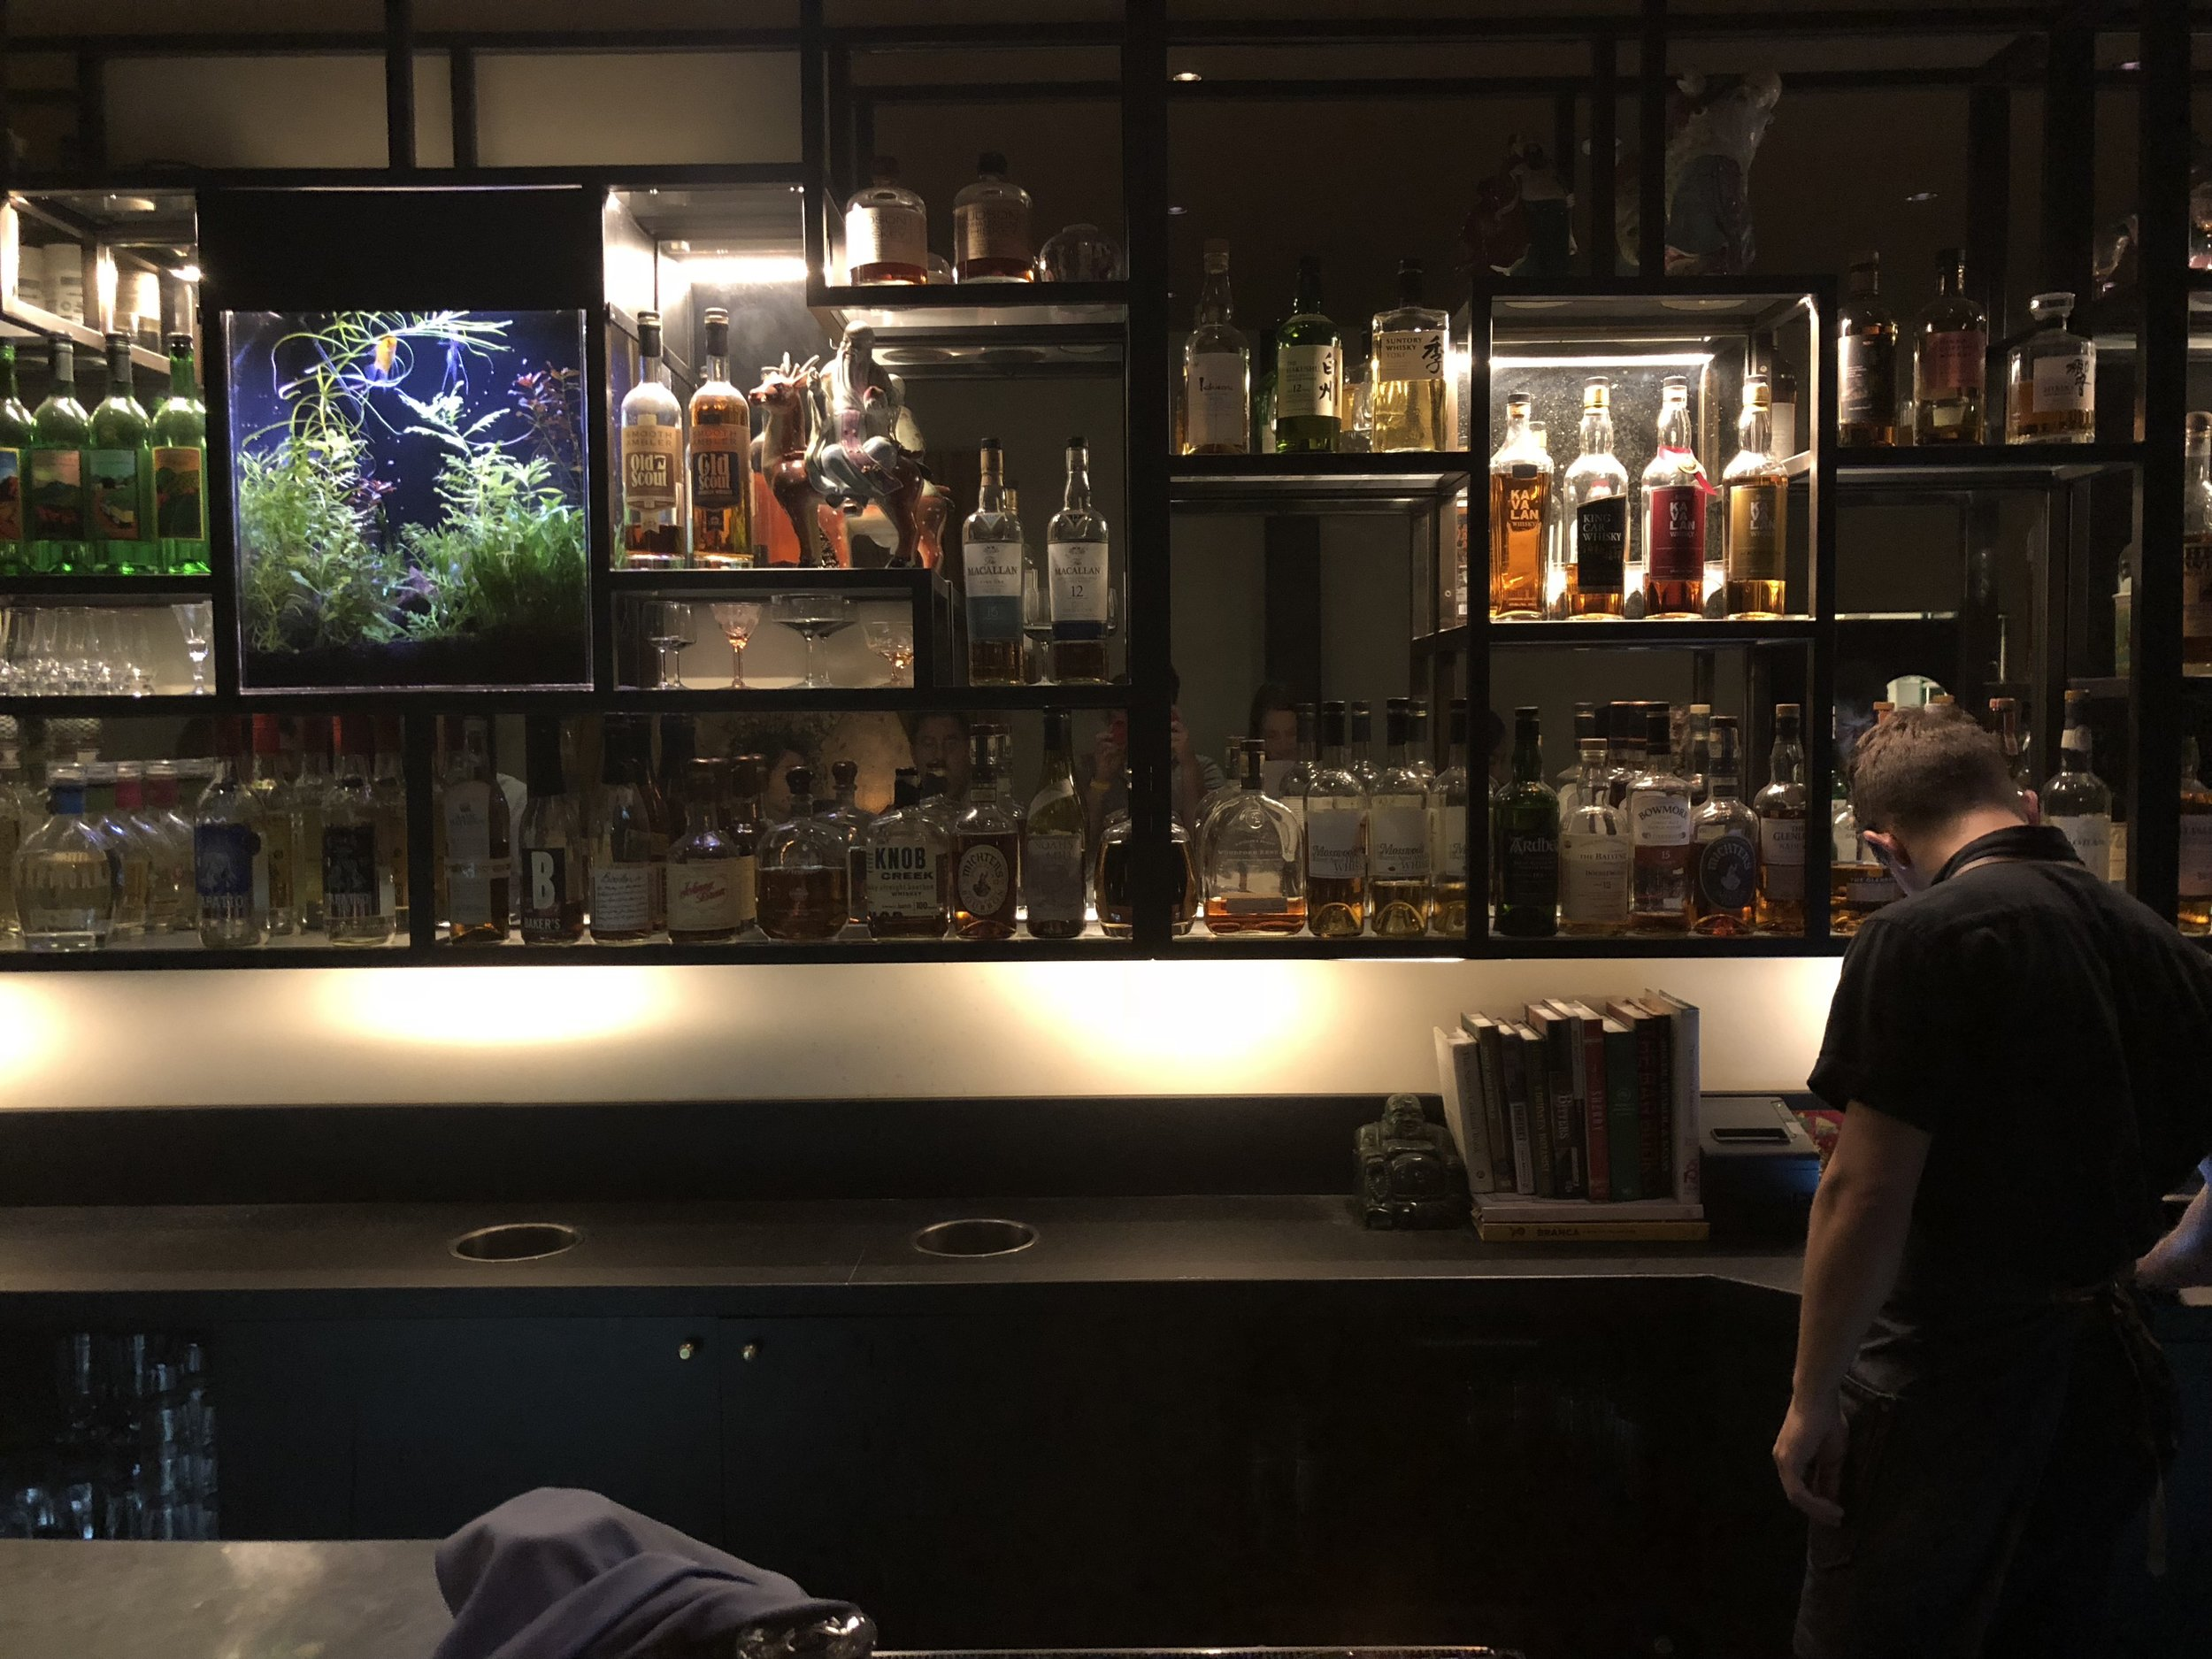 The bar up front